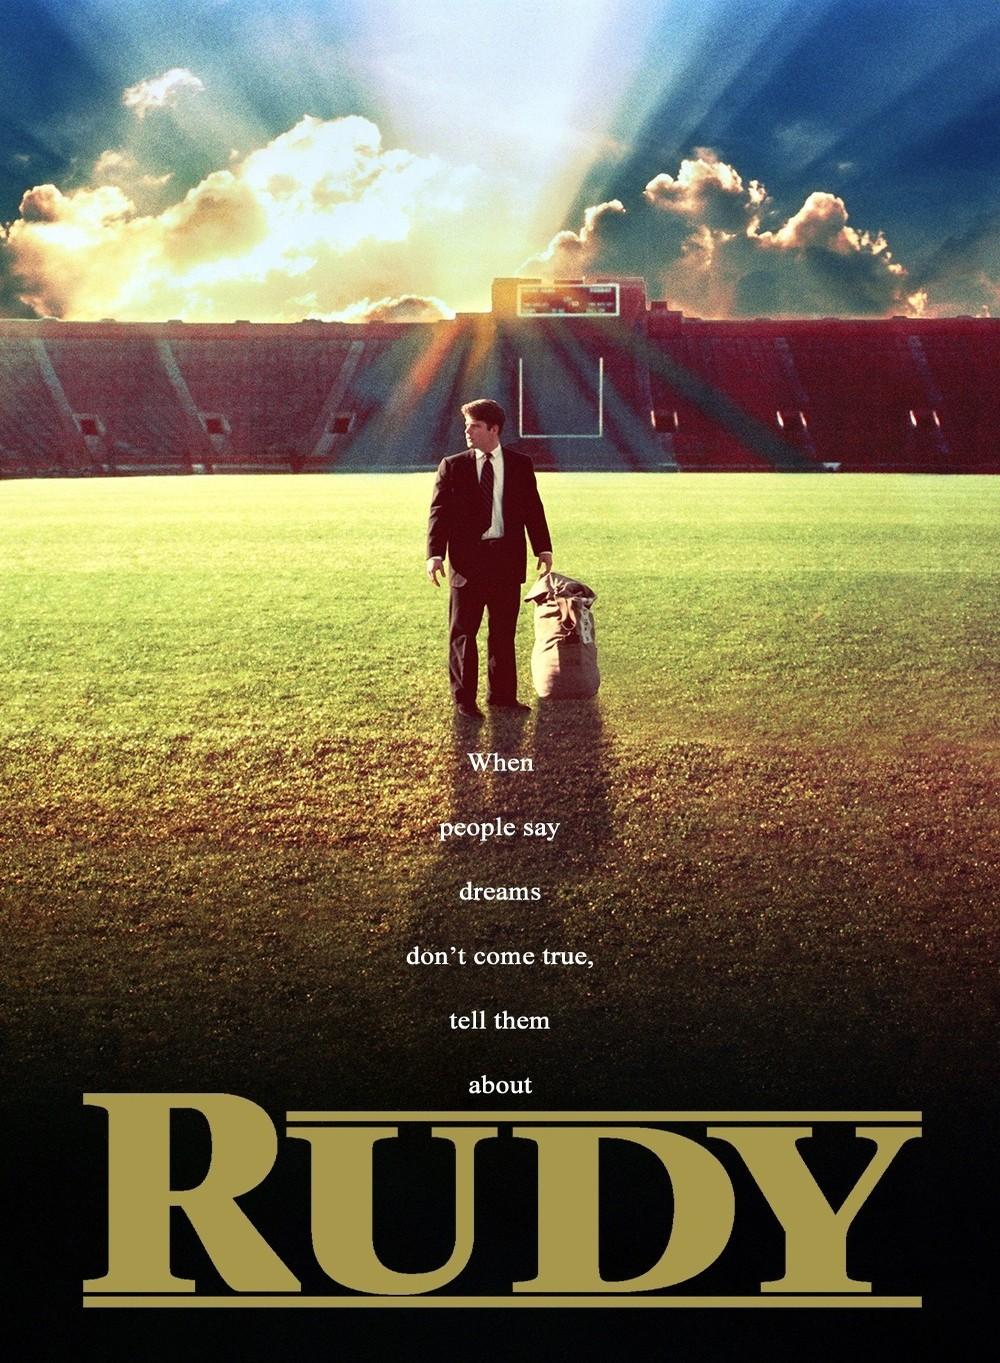 an introduction to the movie rudy by david anspaugh Pitch perfect (also known as the hit girls in france, and voices in italy) is a 2012 american comedy film directed by jason moore and written by kay cannon it.